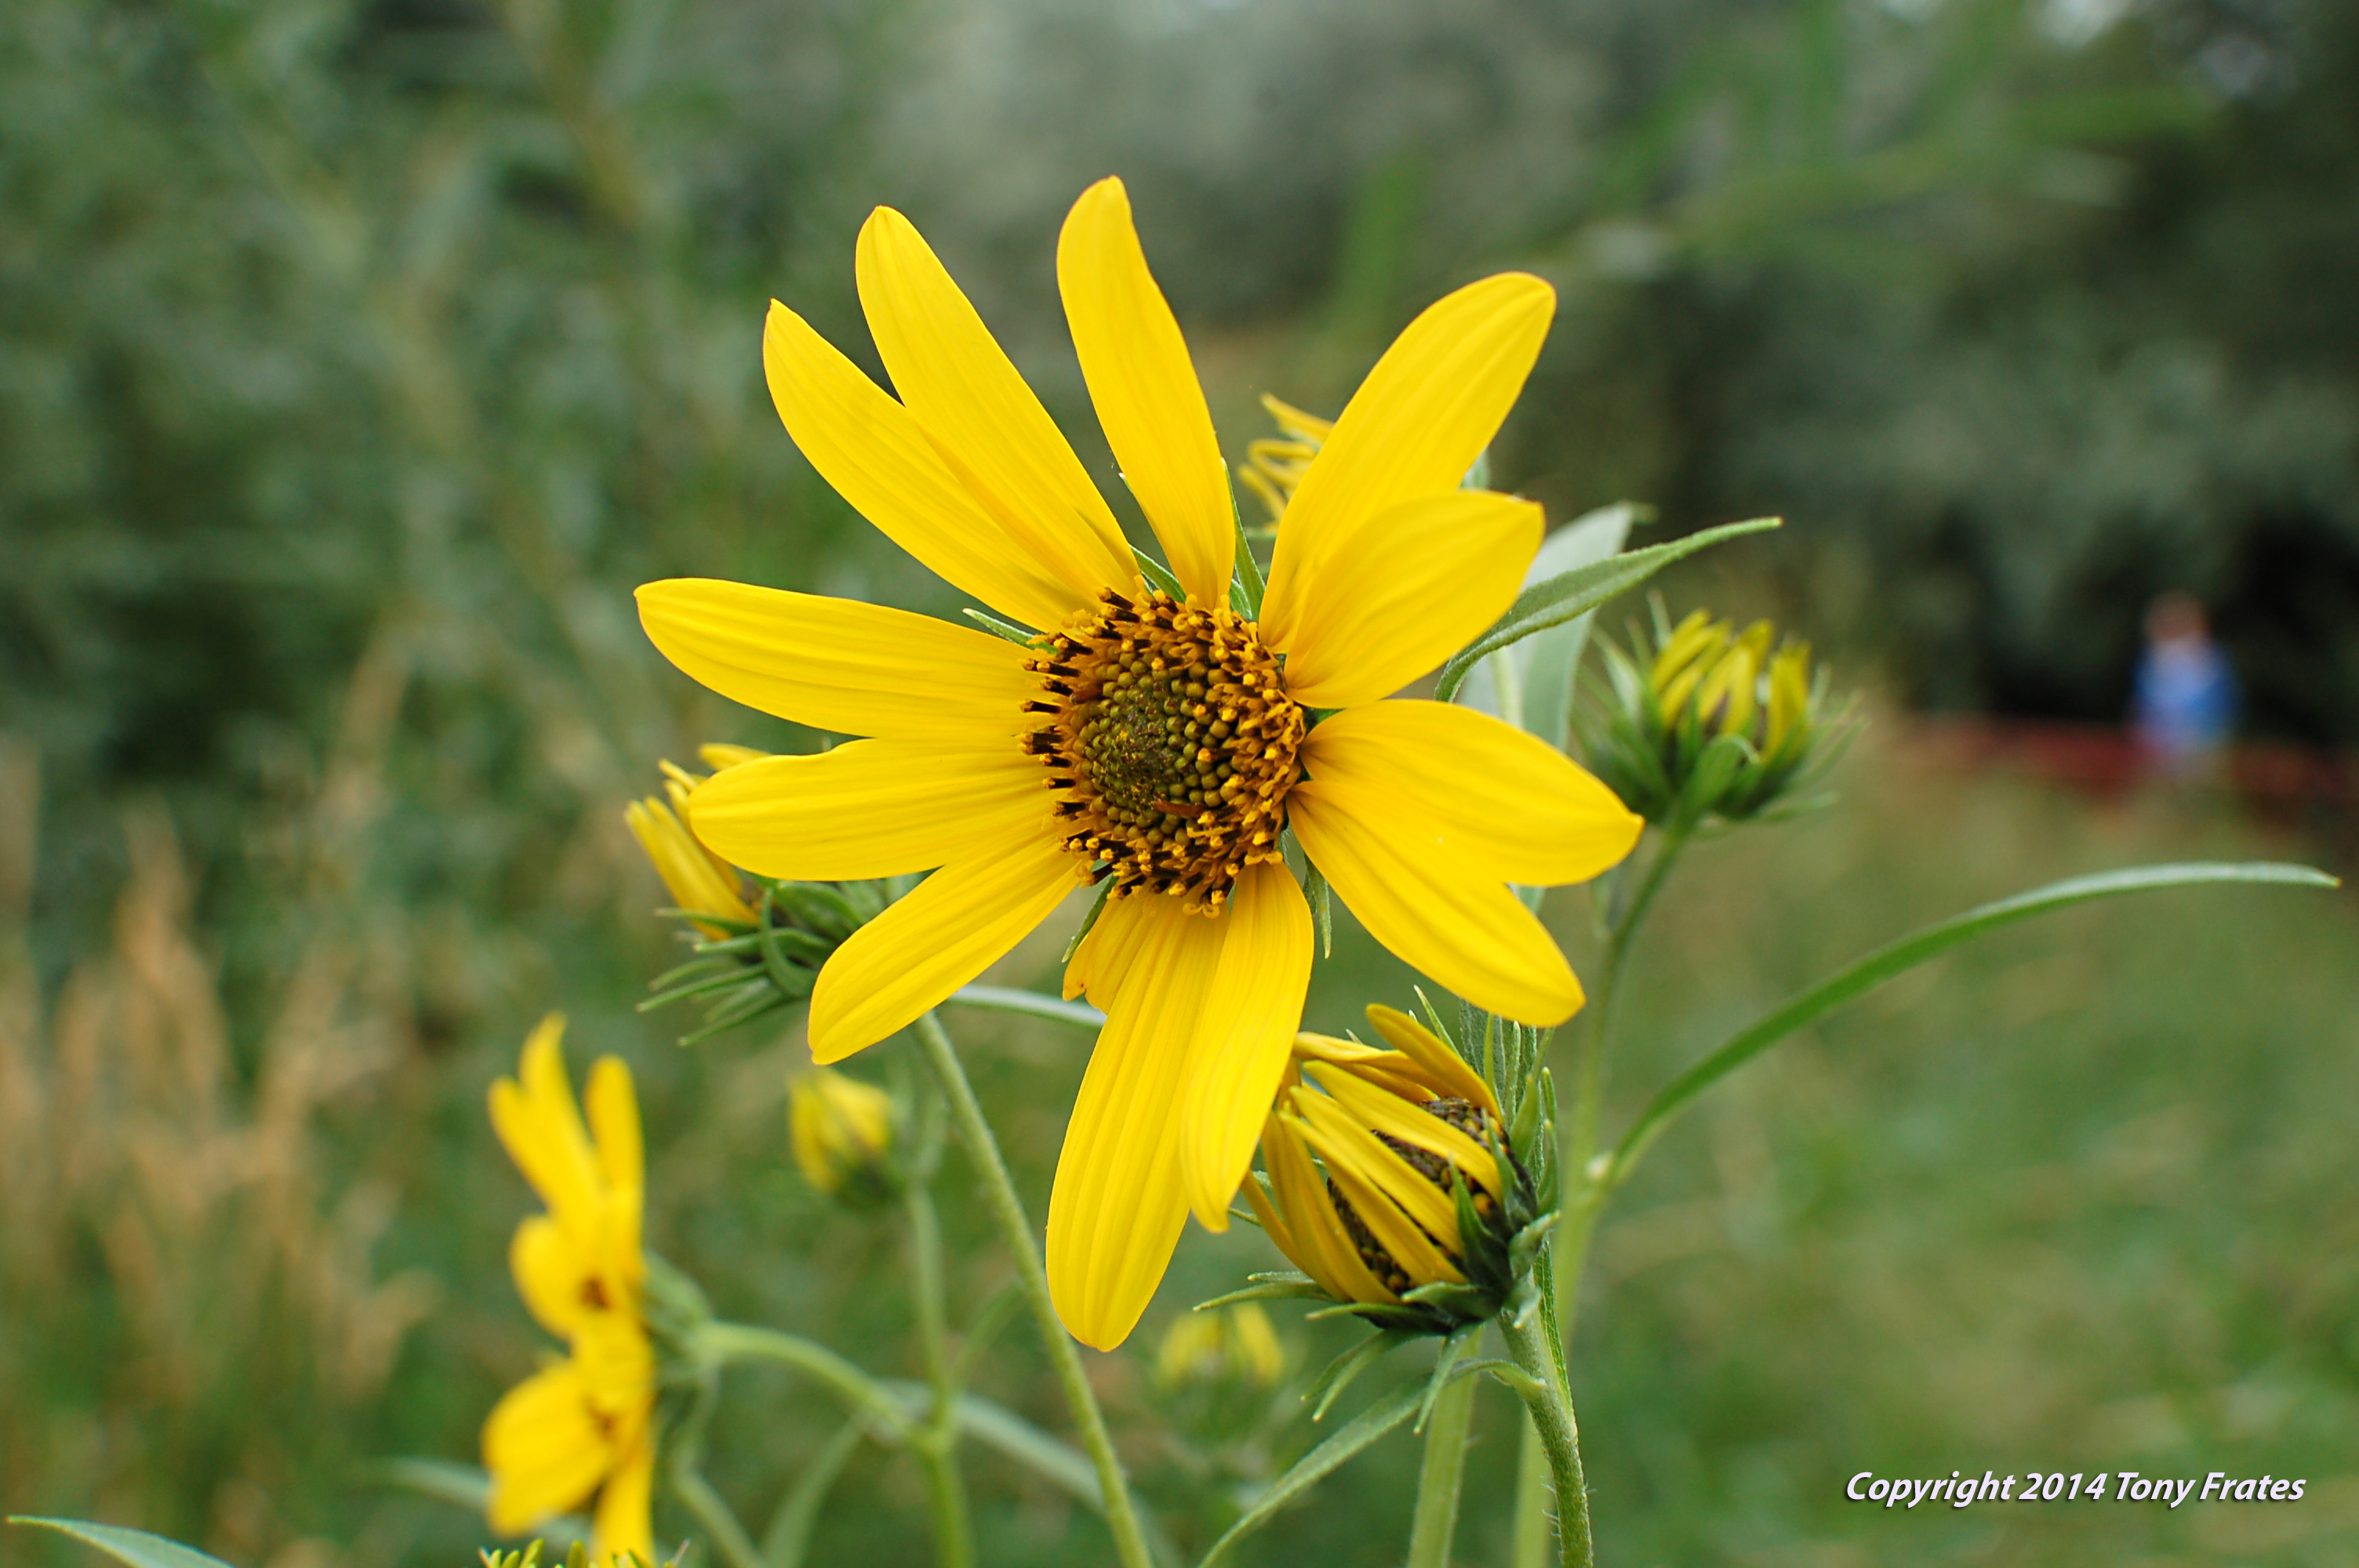 Image of Nuttall's sunflower